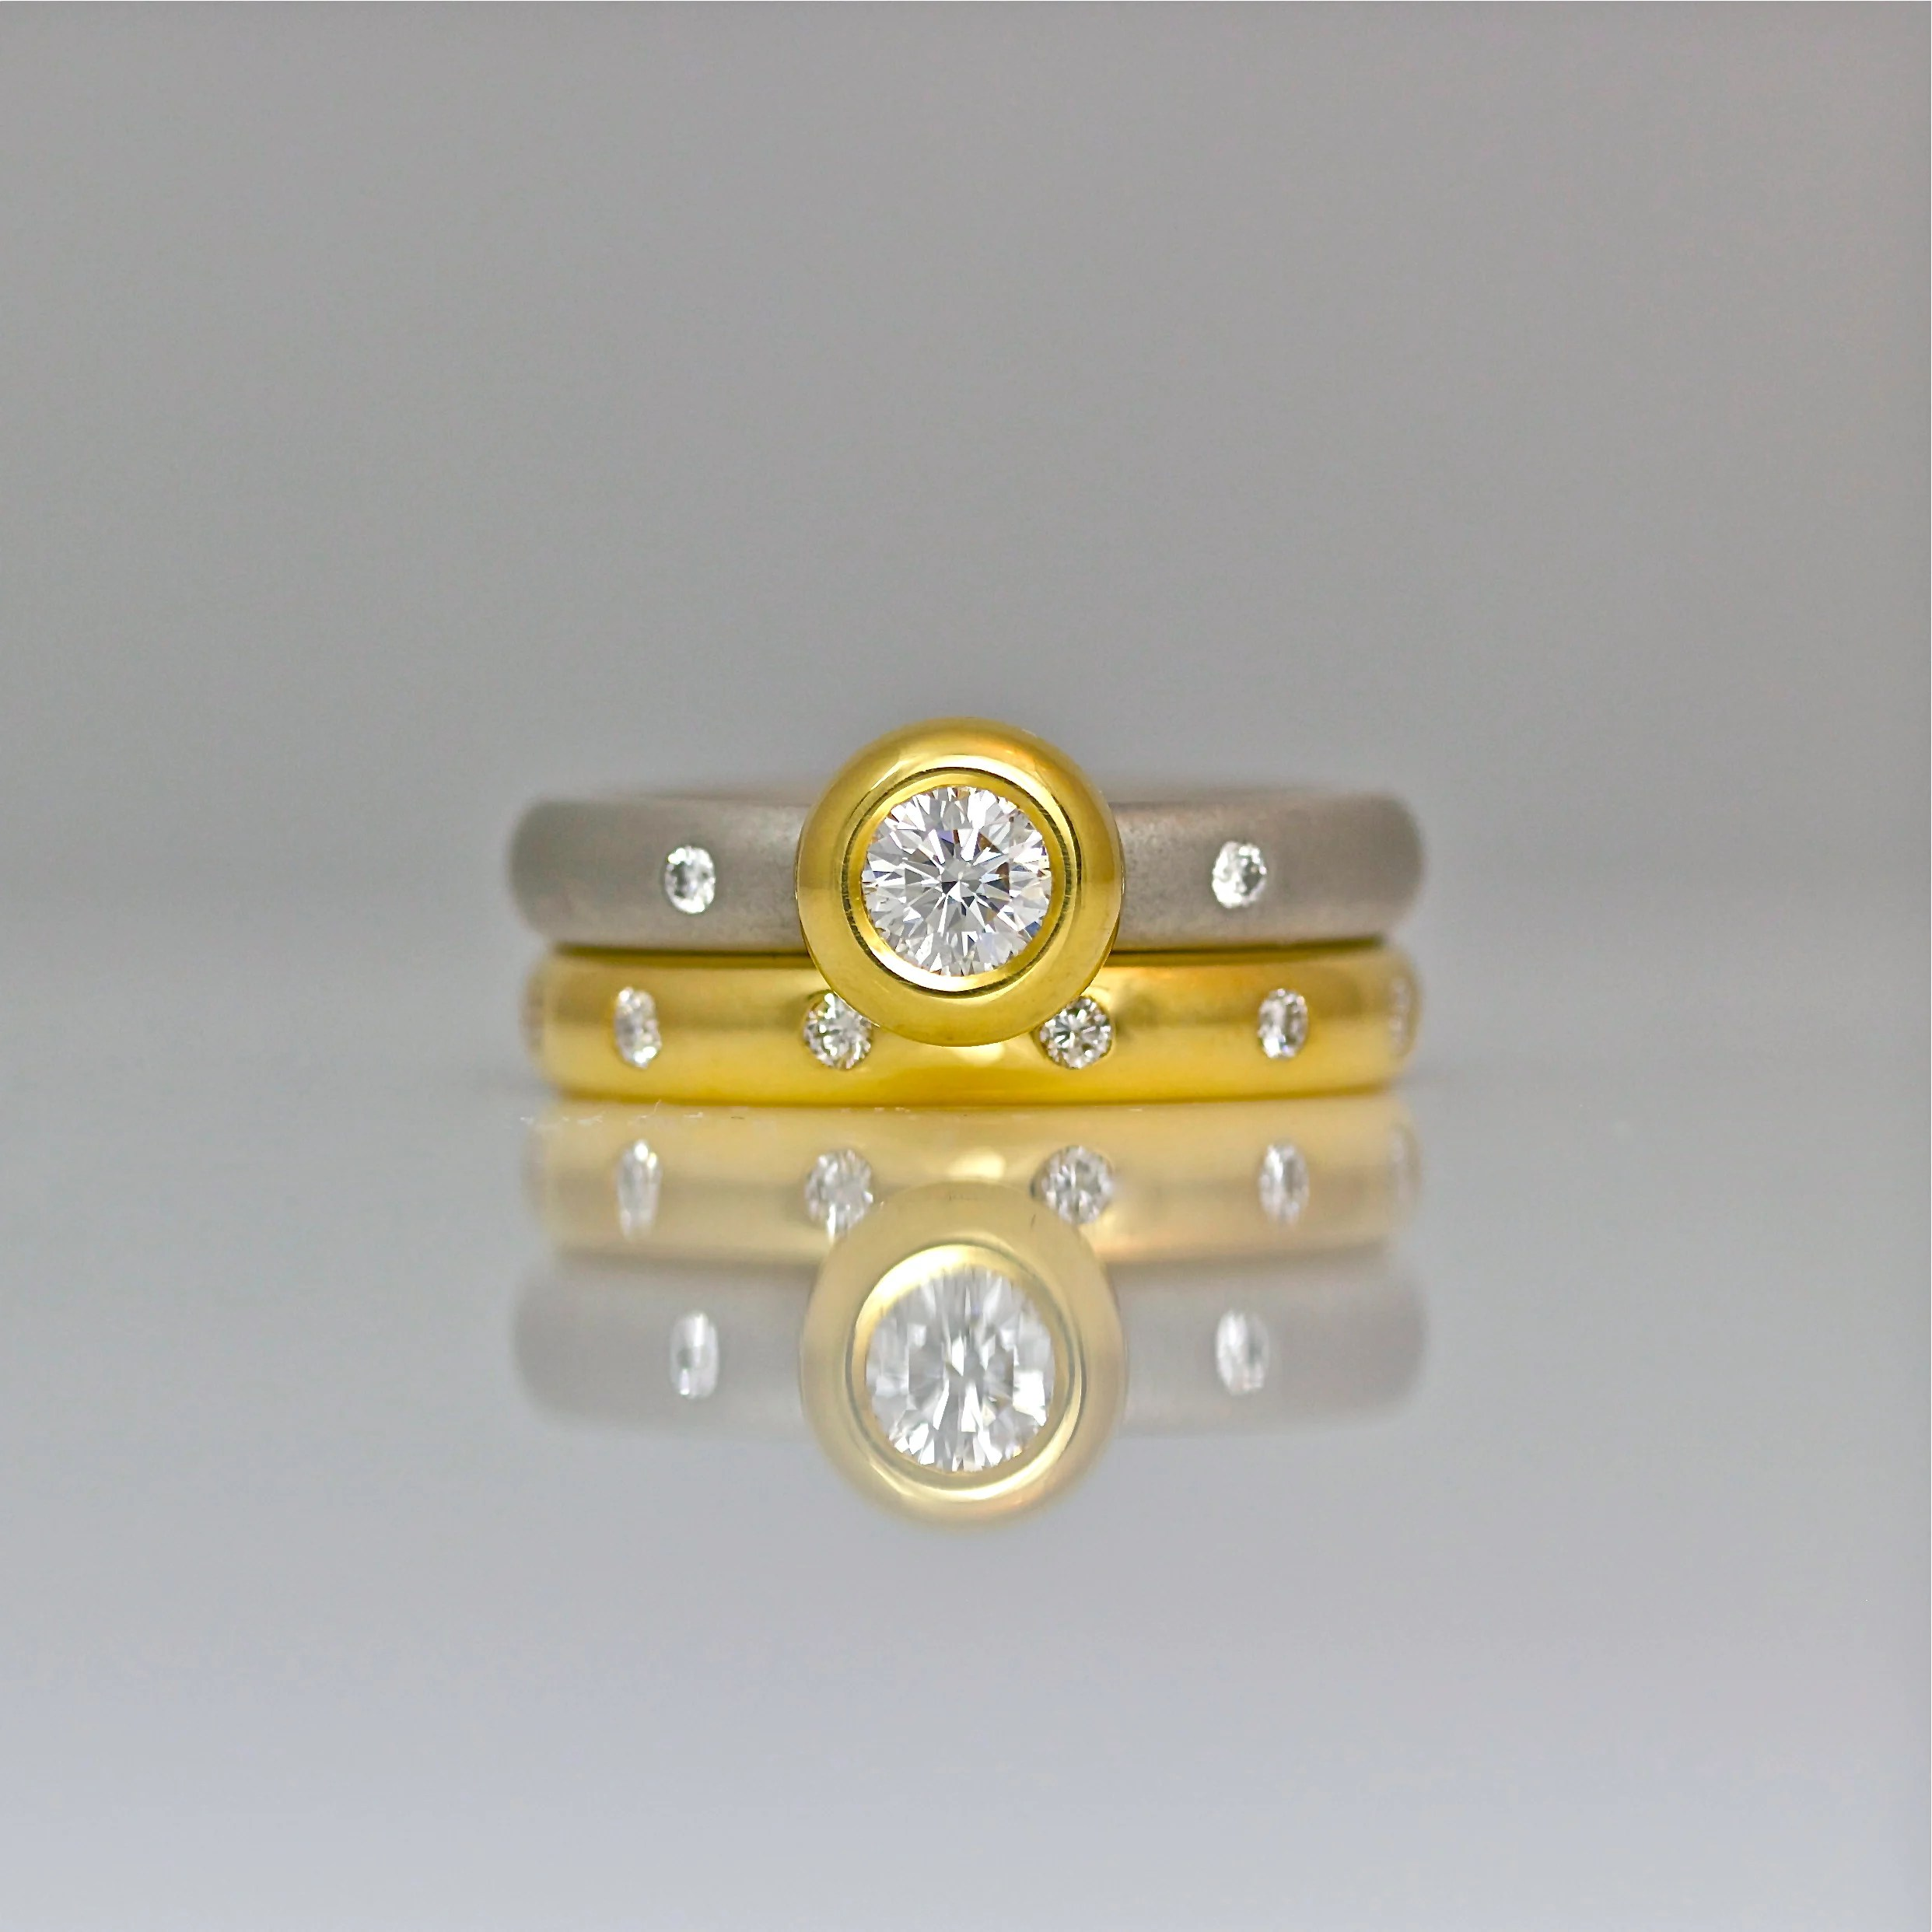 diamond yellow jewelers round ring gold img modern engagement unique craft revival wedding rings